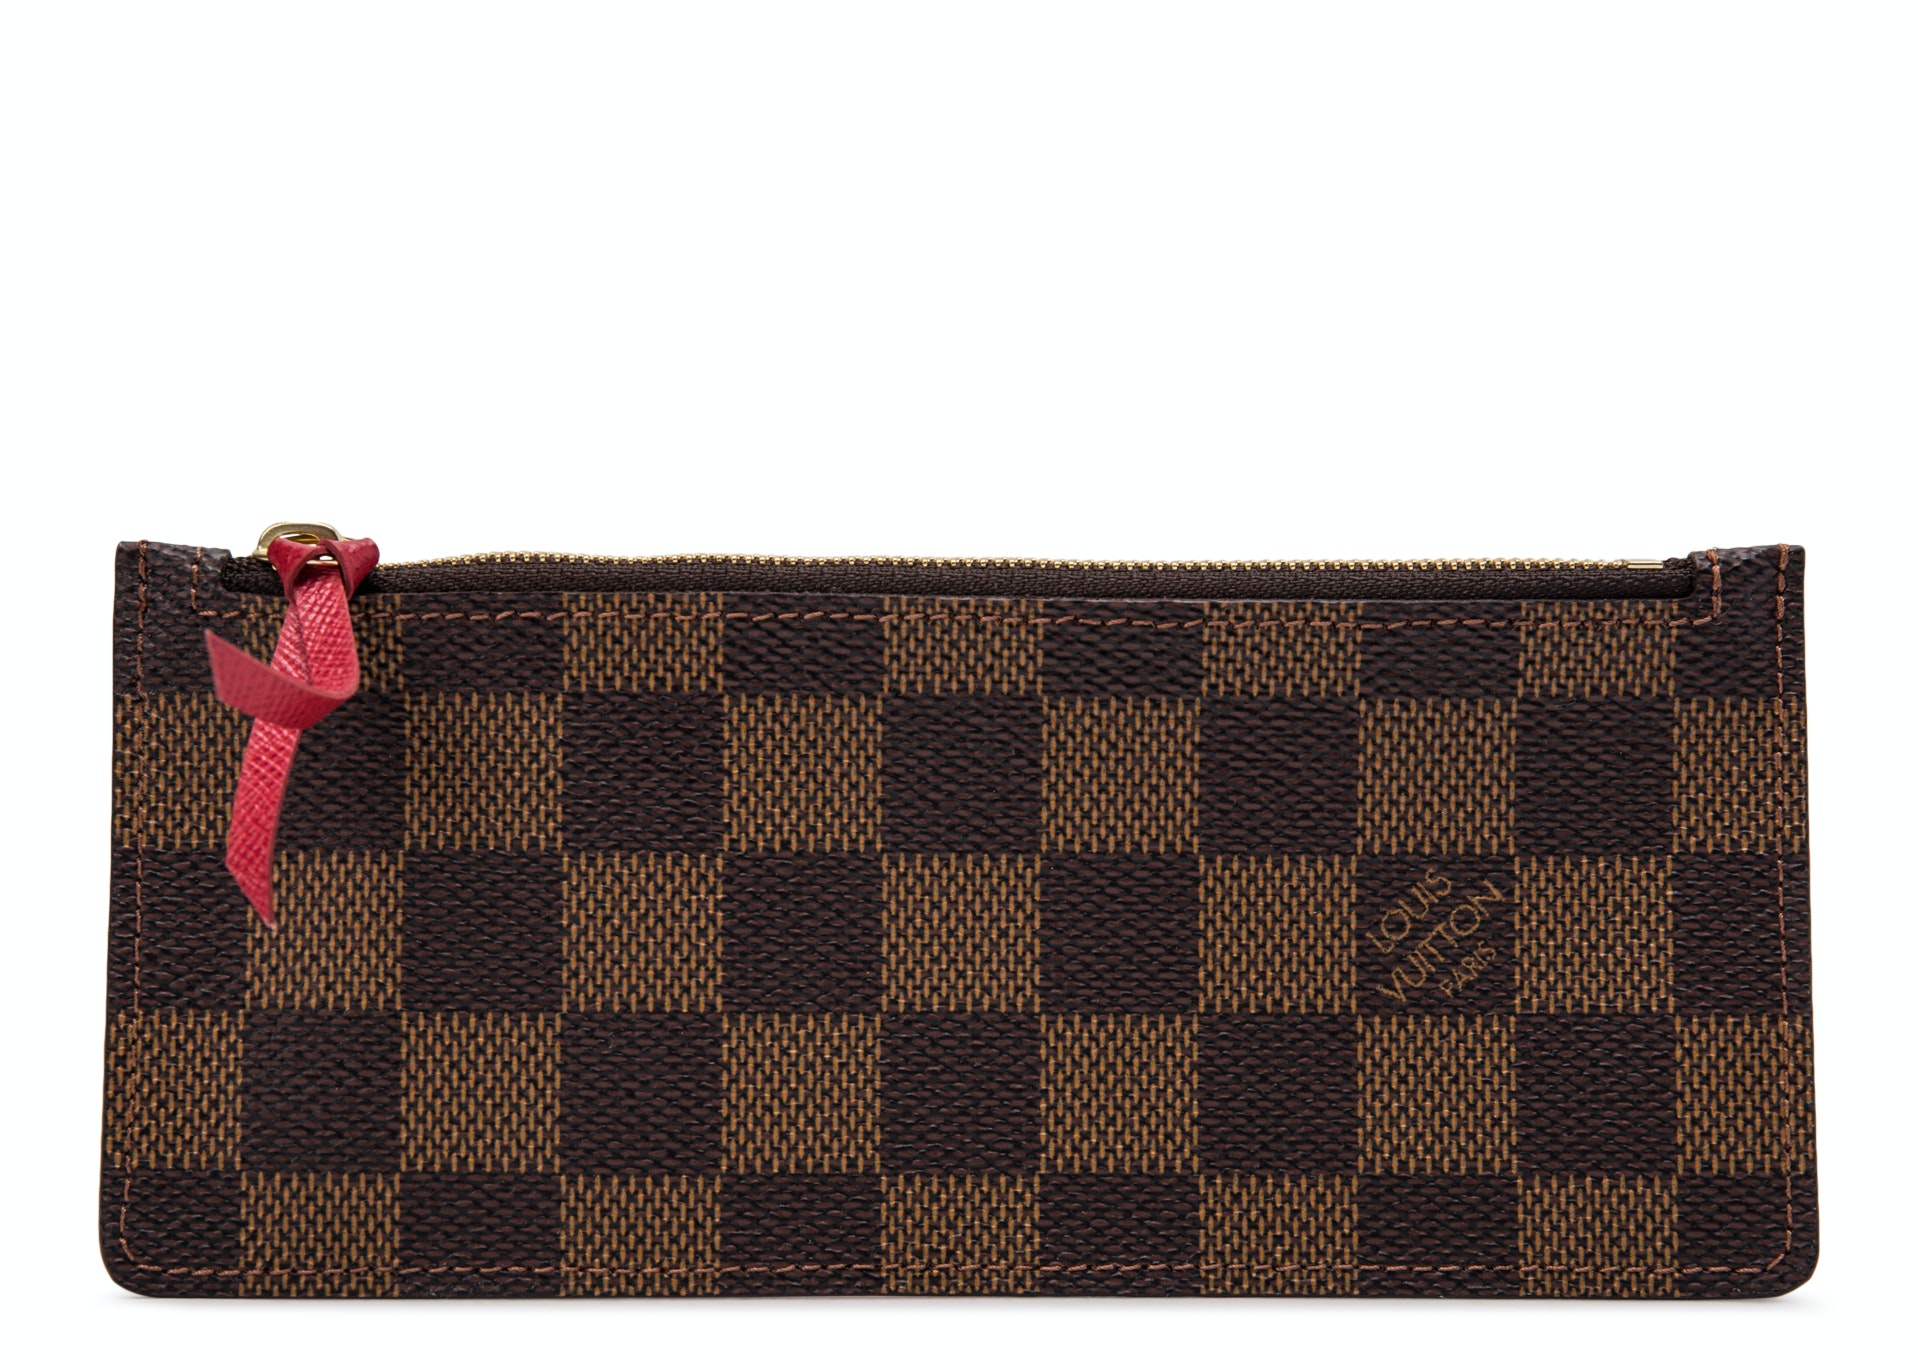 Louis Vuitton Wallet Josephine Damier Ebene Zippered Insert Brown/Red